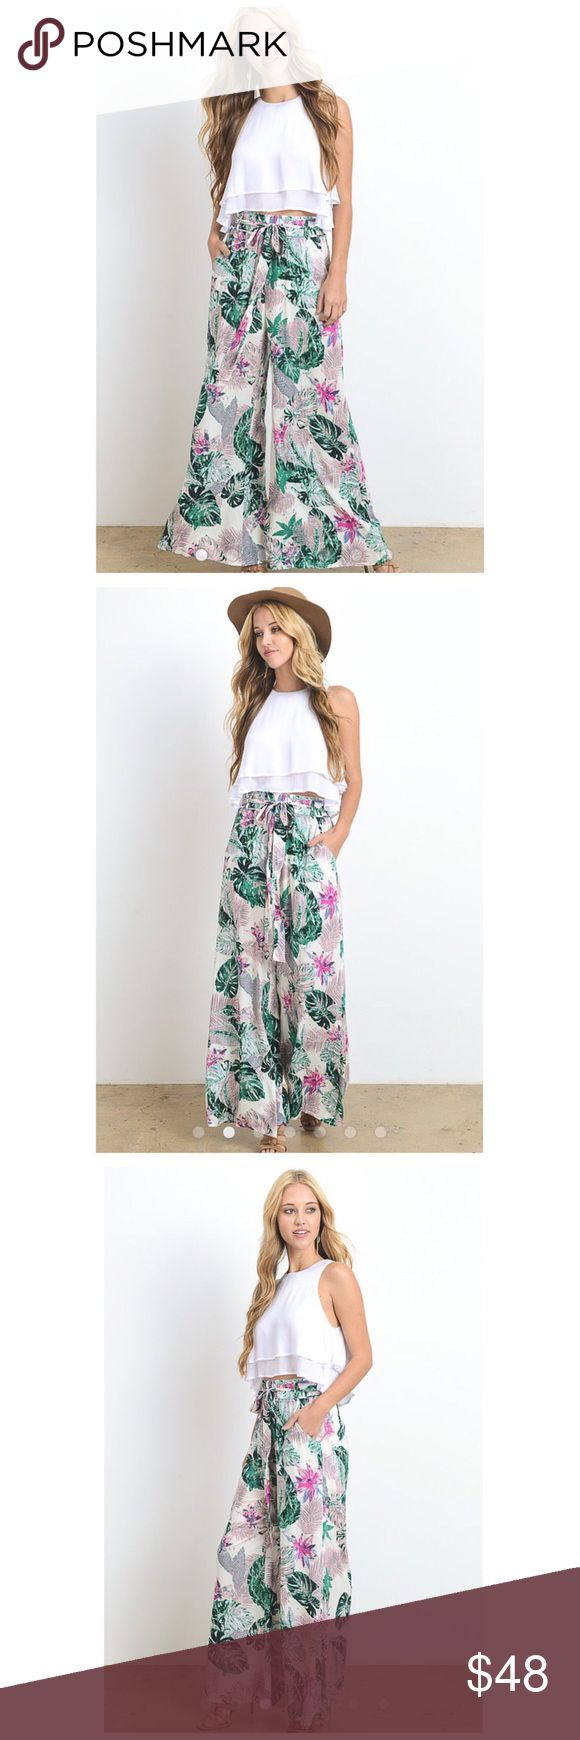 NEW LISTING  🏝The Tropical Farrah Pant Wide Leg High Waist w/ Belt Tie Pockets Color: White Body, Green & Pink Material: 100% rayon Machine Wash Cold   **The Farrah Top is also avaliable; please see seperate listing 🌵Price Firm Owl About Happy Pants